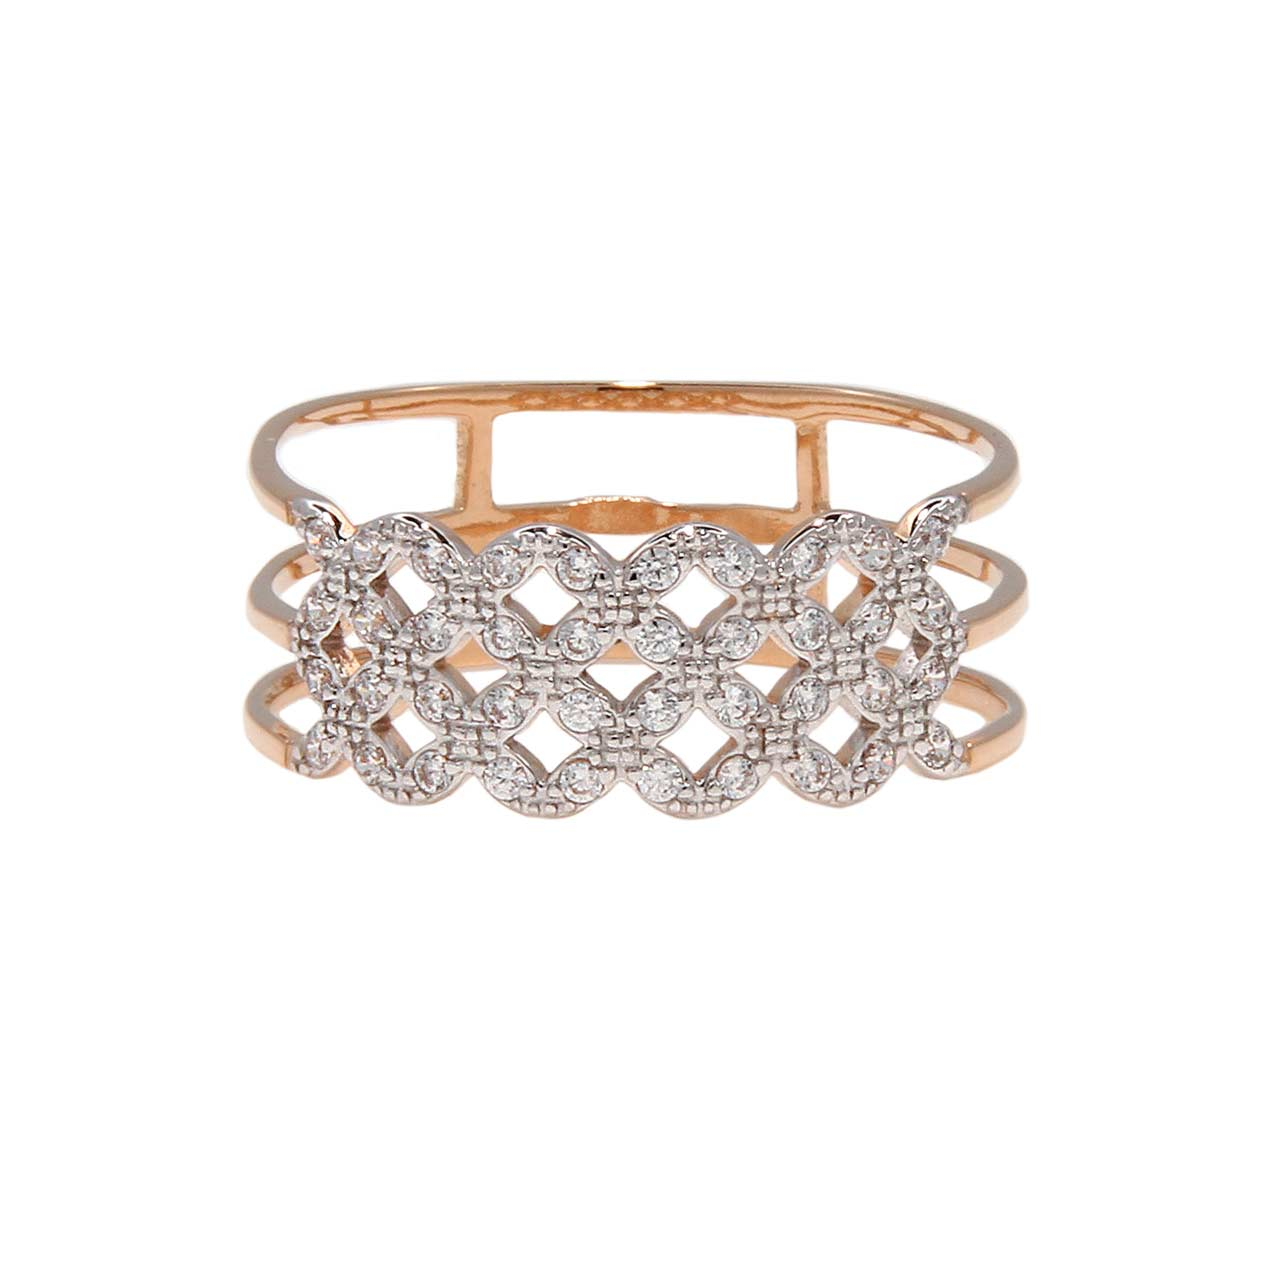 Gold woven flowers band 2